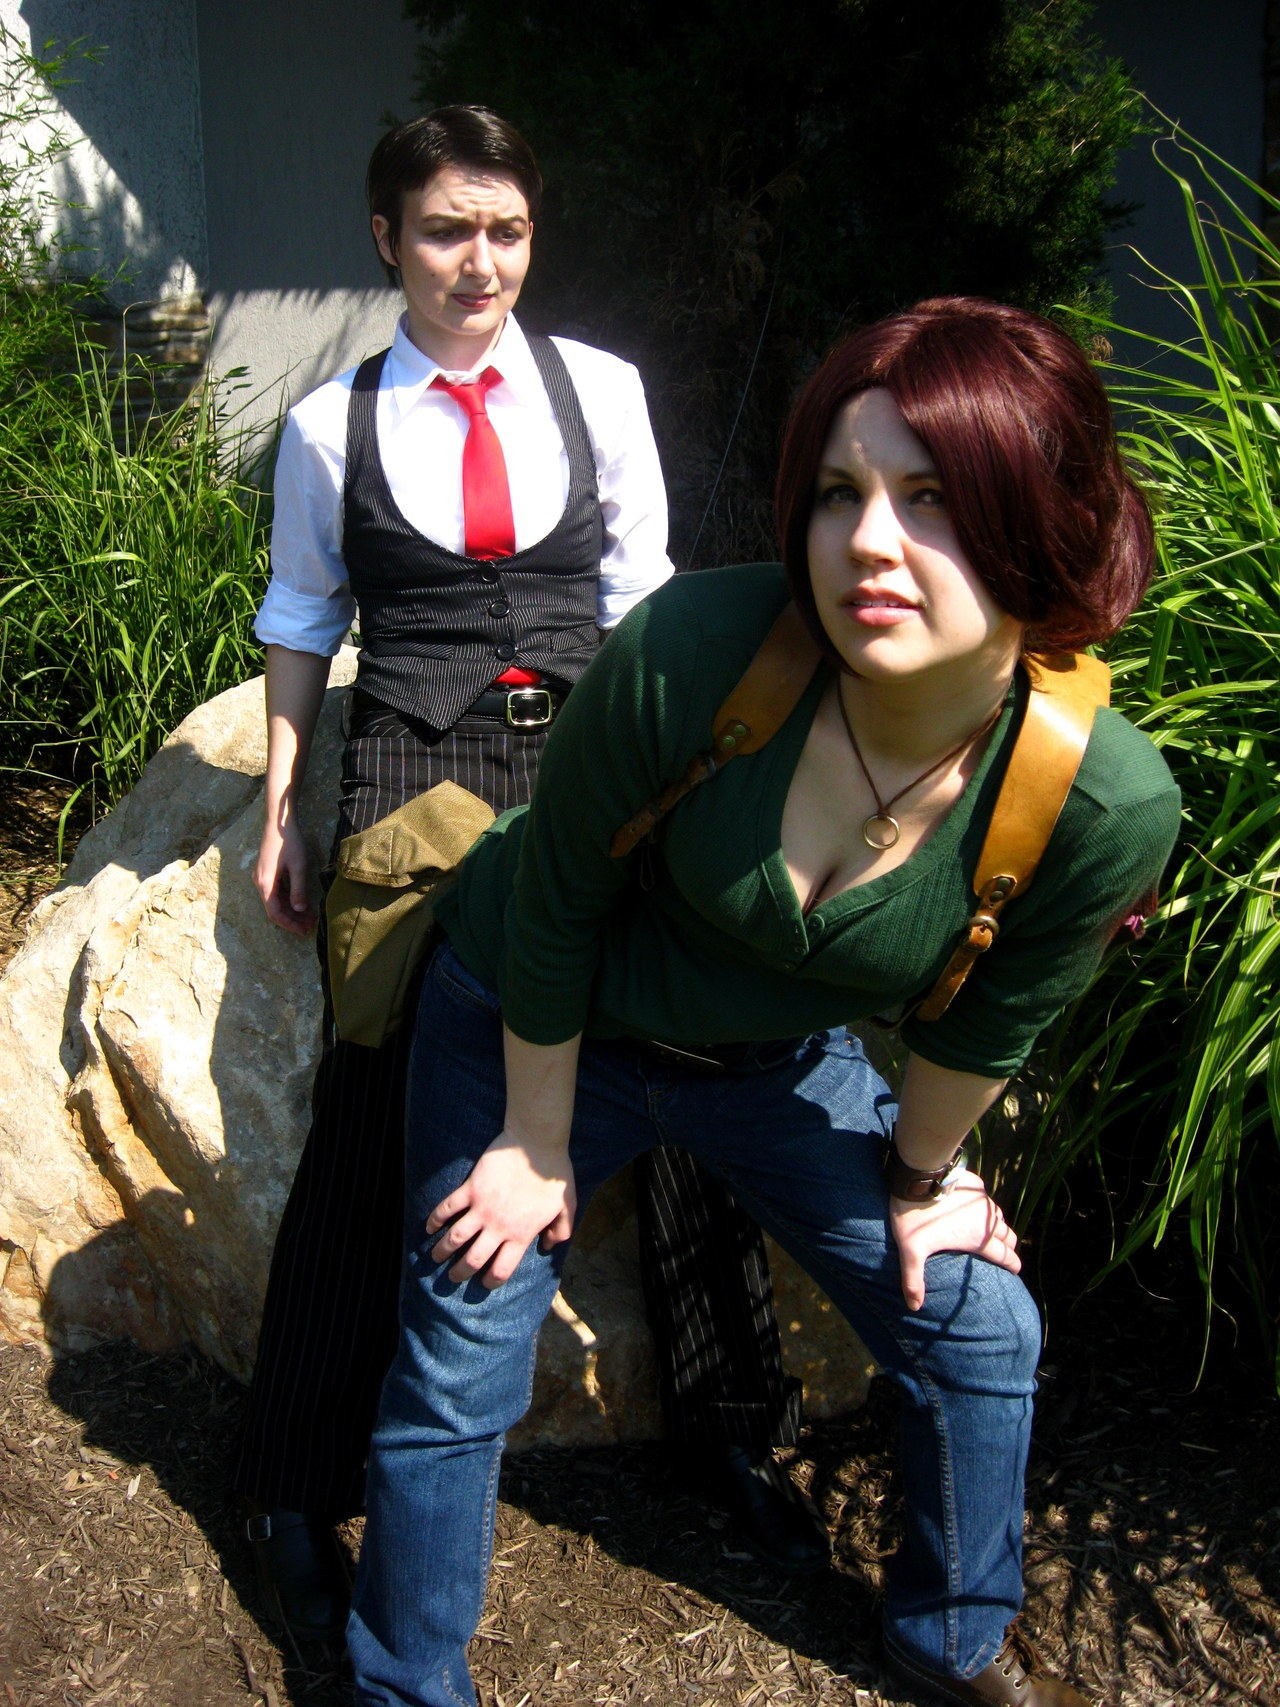 lady-of-rohan:  More genderbent Uncharted with miss Del from Colossalcon this year! ;D You can see more here, here, and here.  Ohmygosh, Miss Del, you have the best features for Marlowe and Talbot. So elegant.